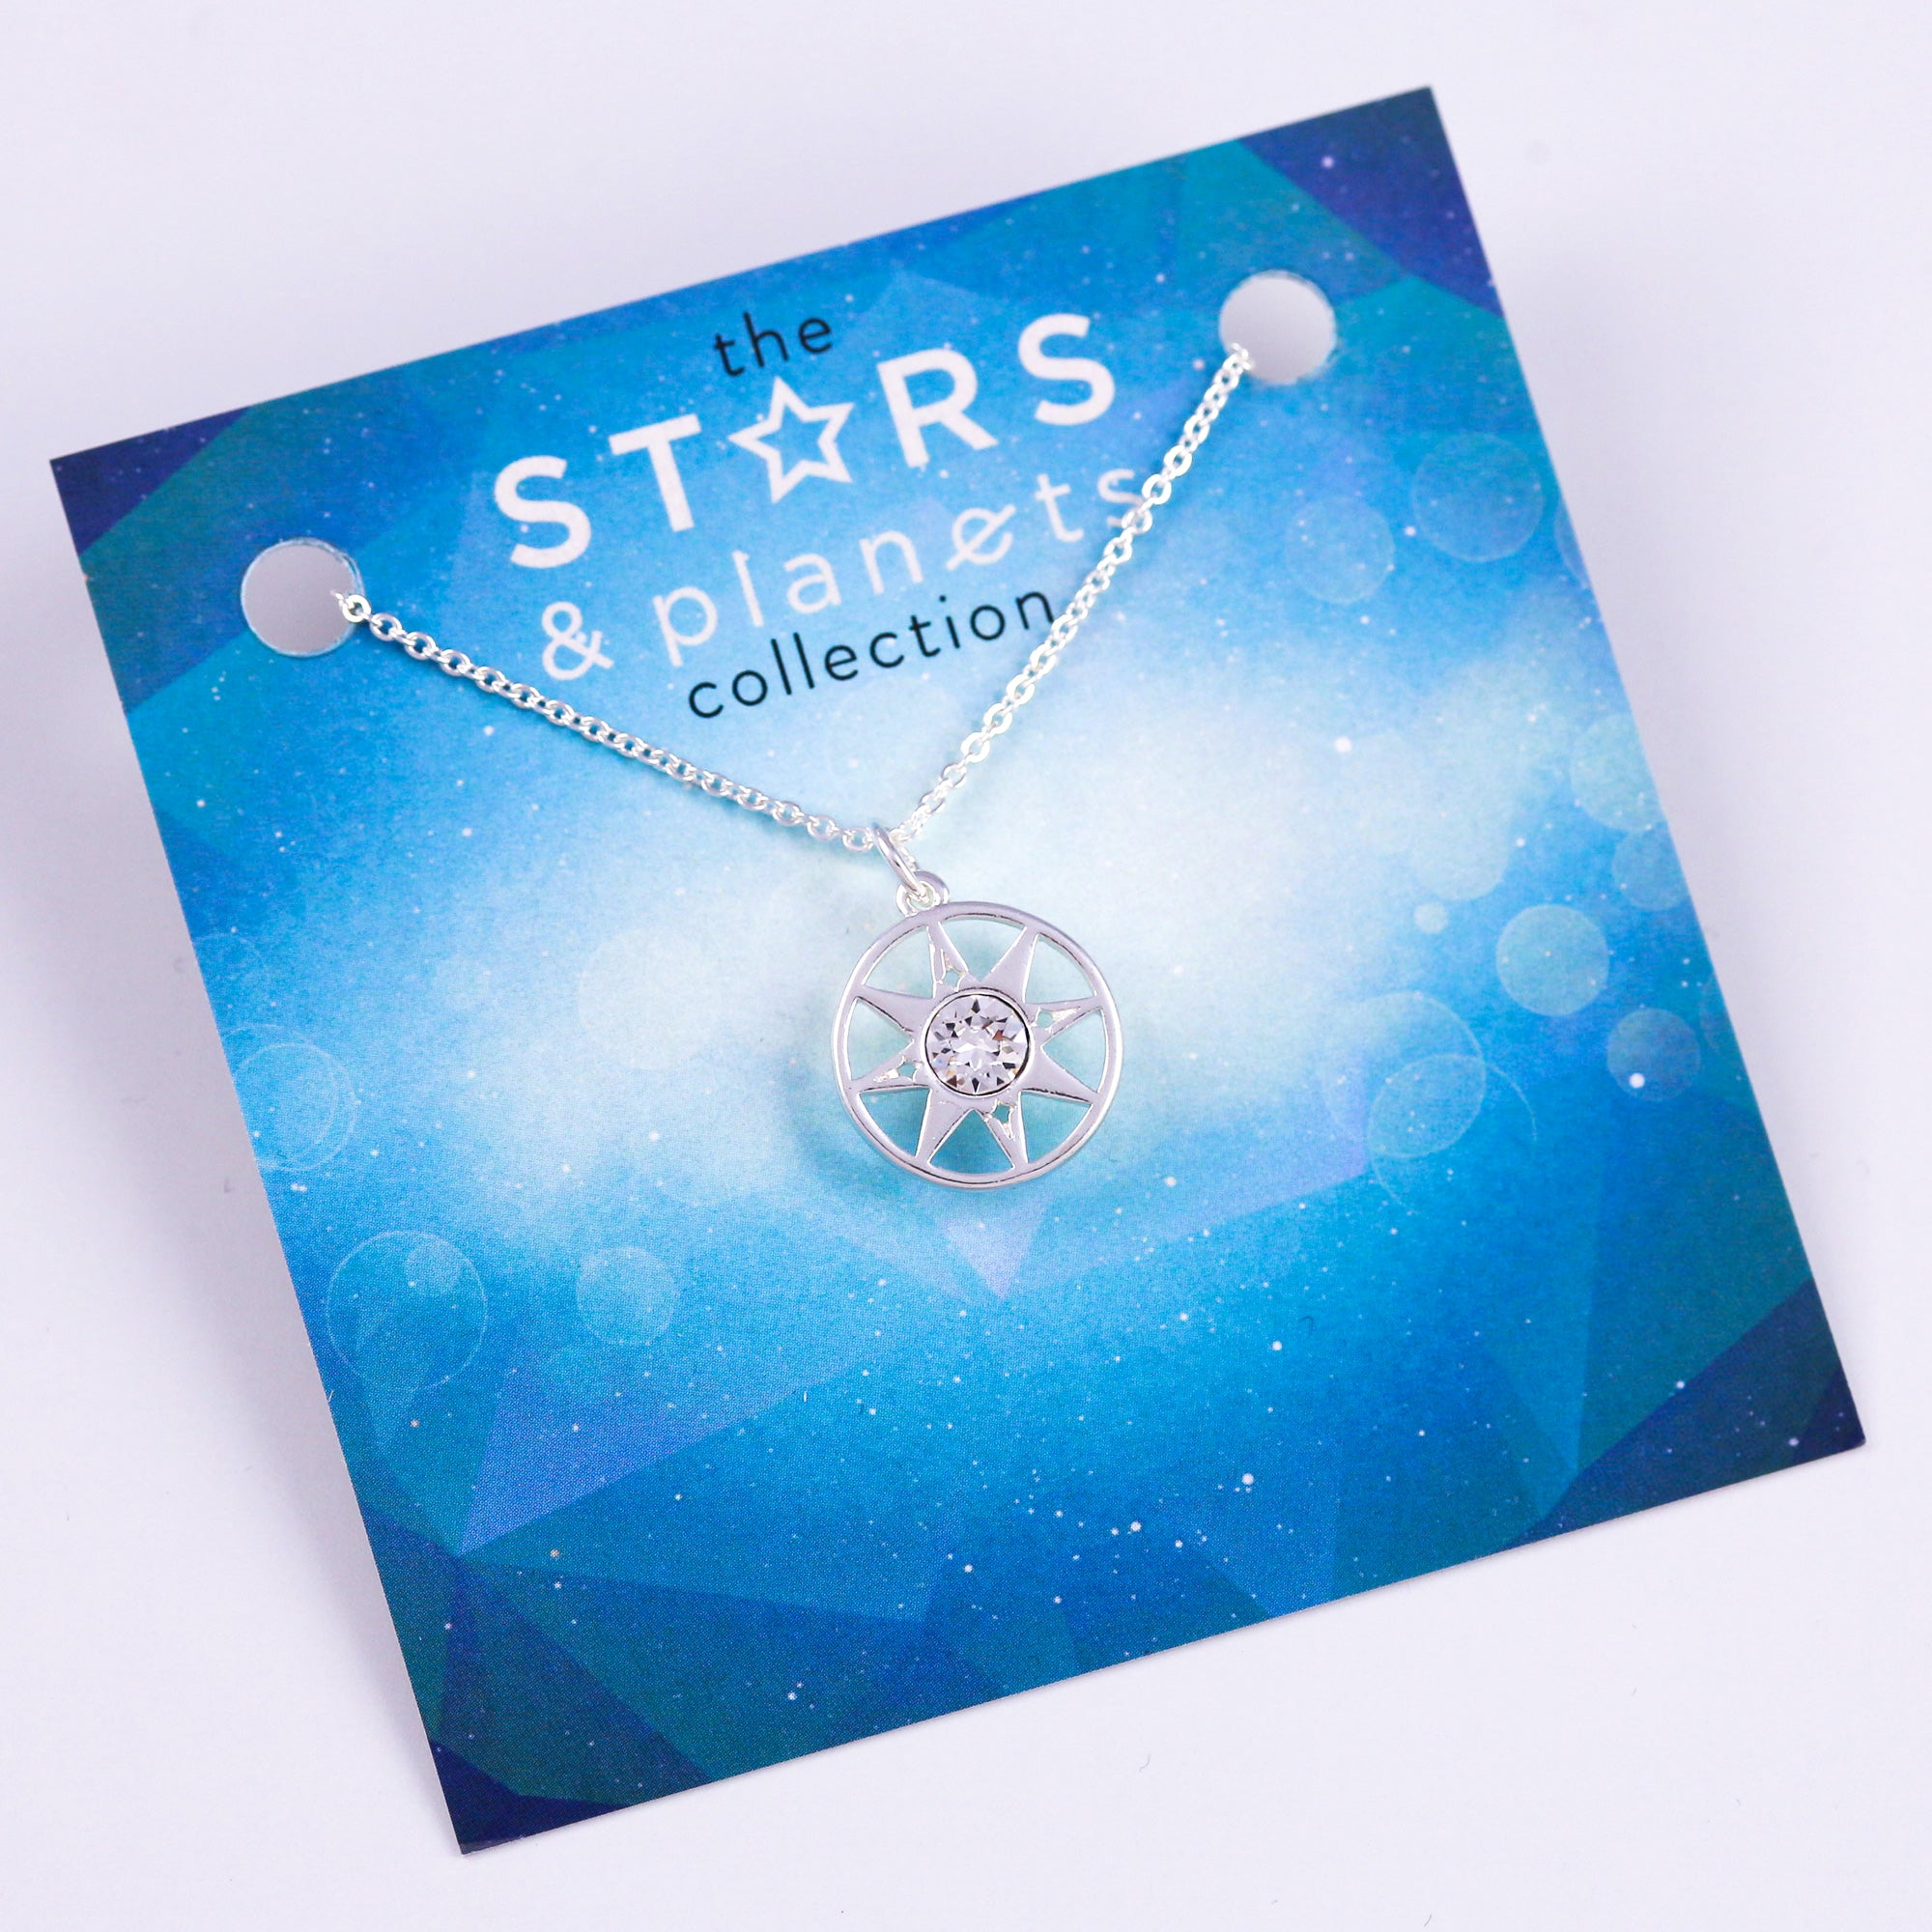 Silver Compass Necklace Stars & Planets Collection